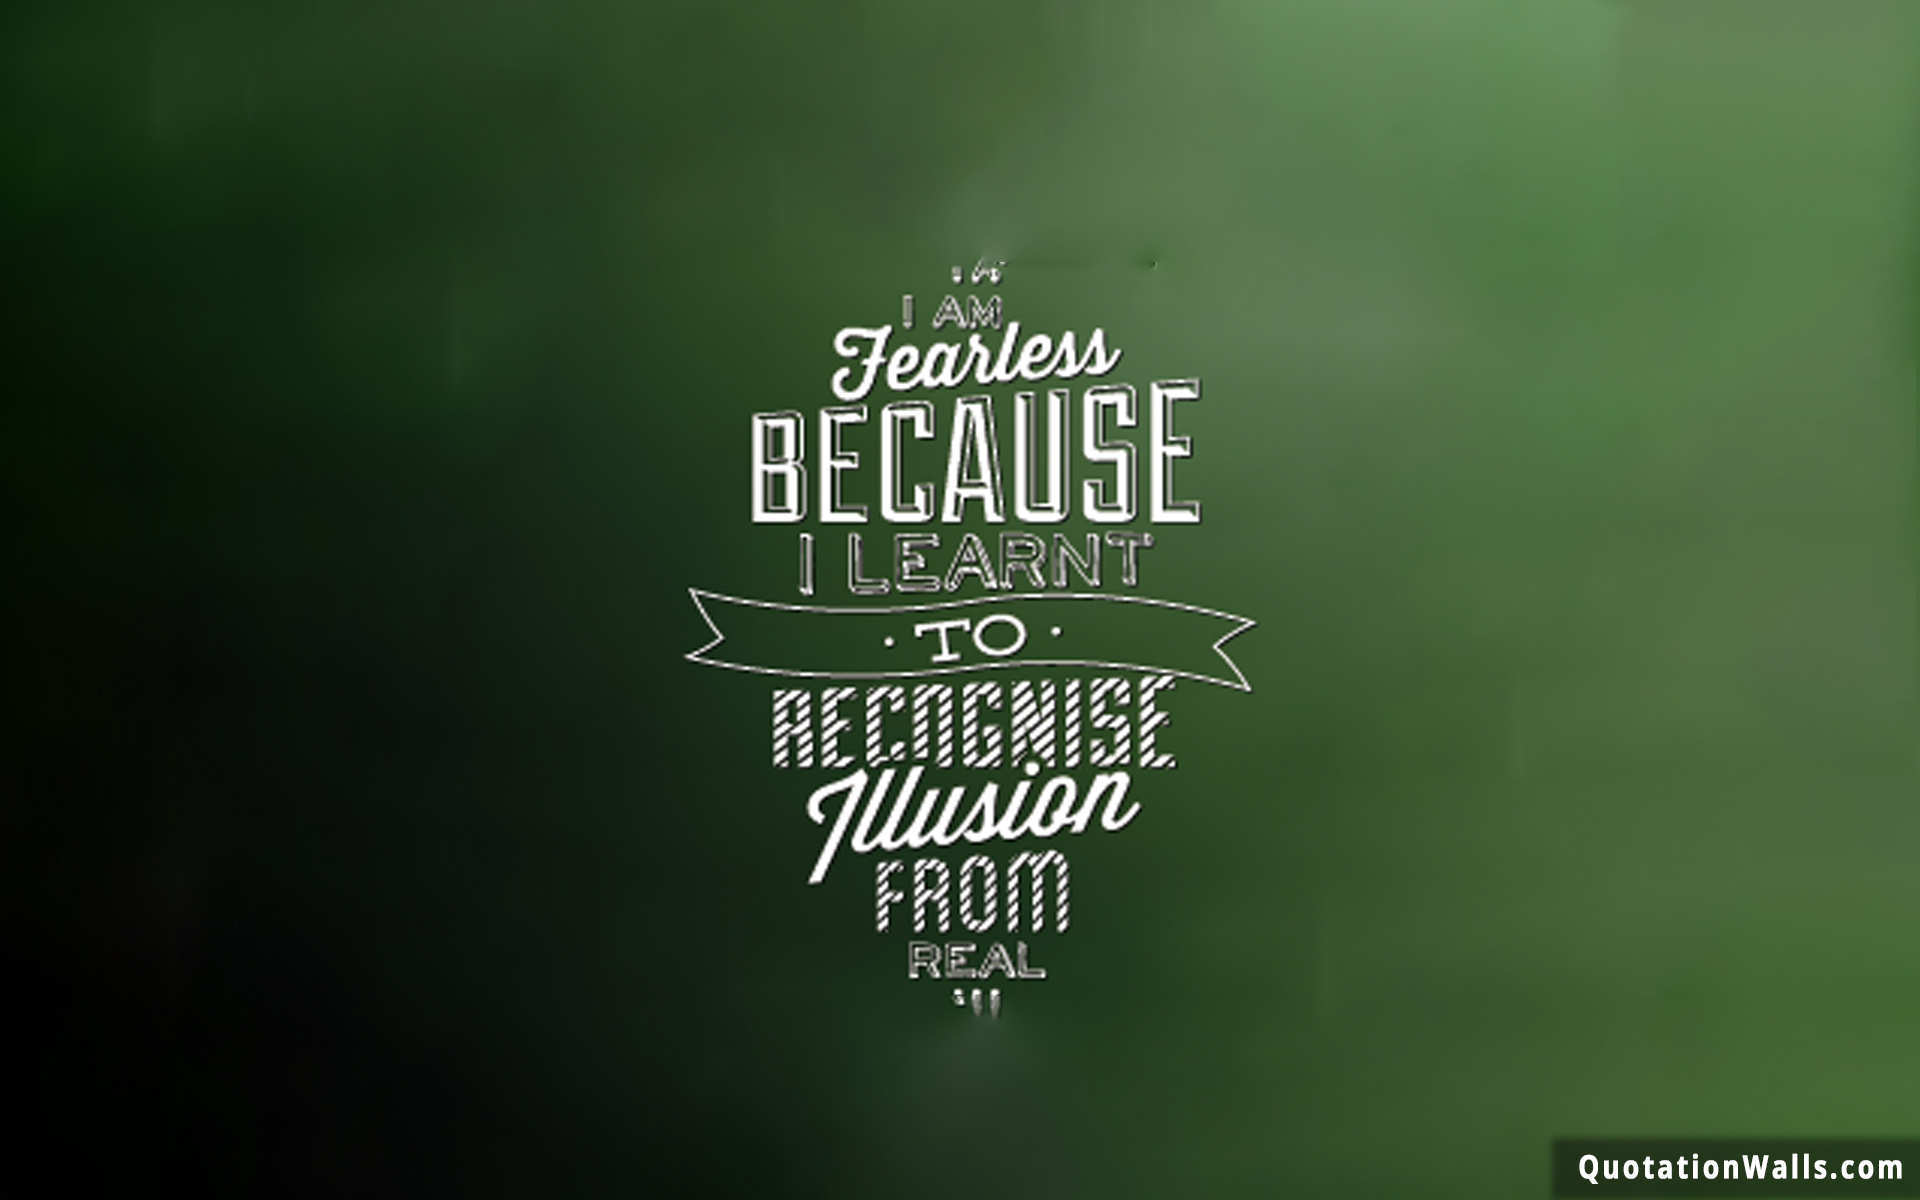 Be Fearless Motivational Wallpaper for Desktop - QuotationWalls